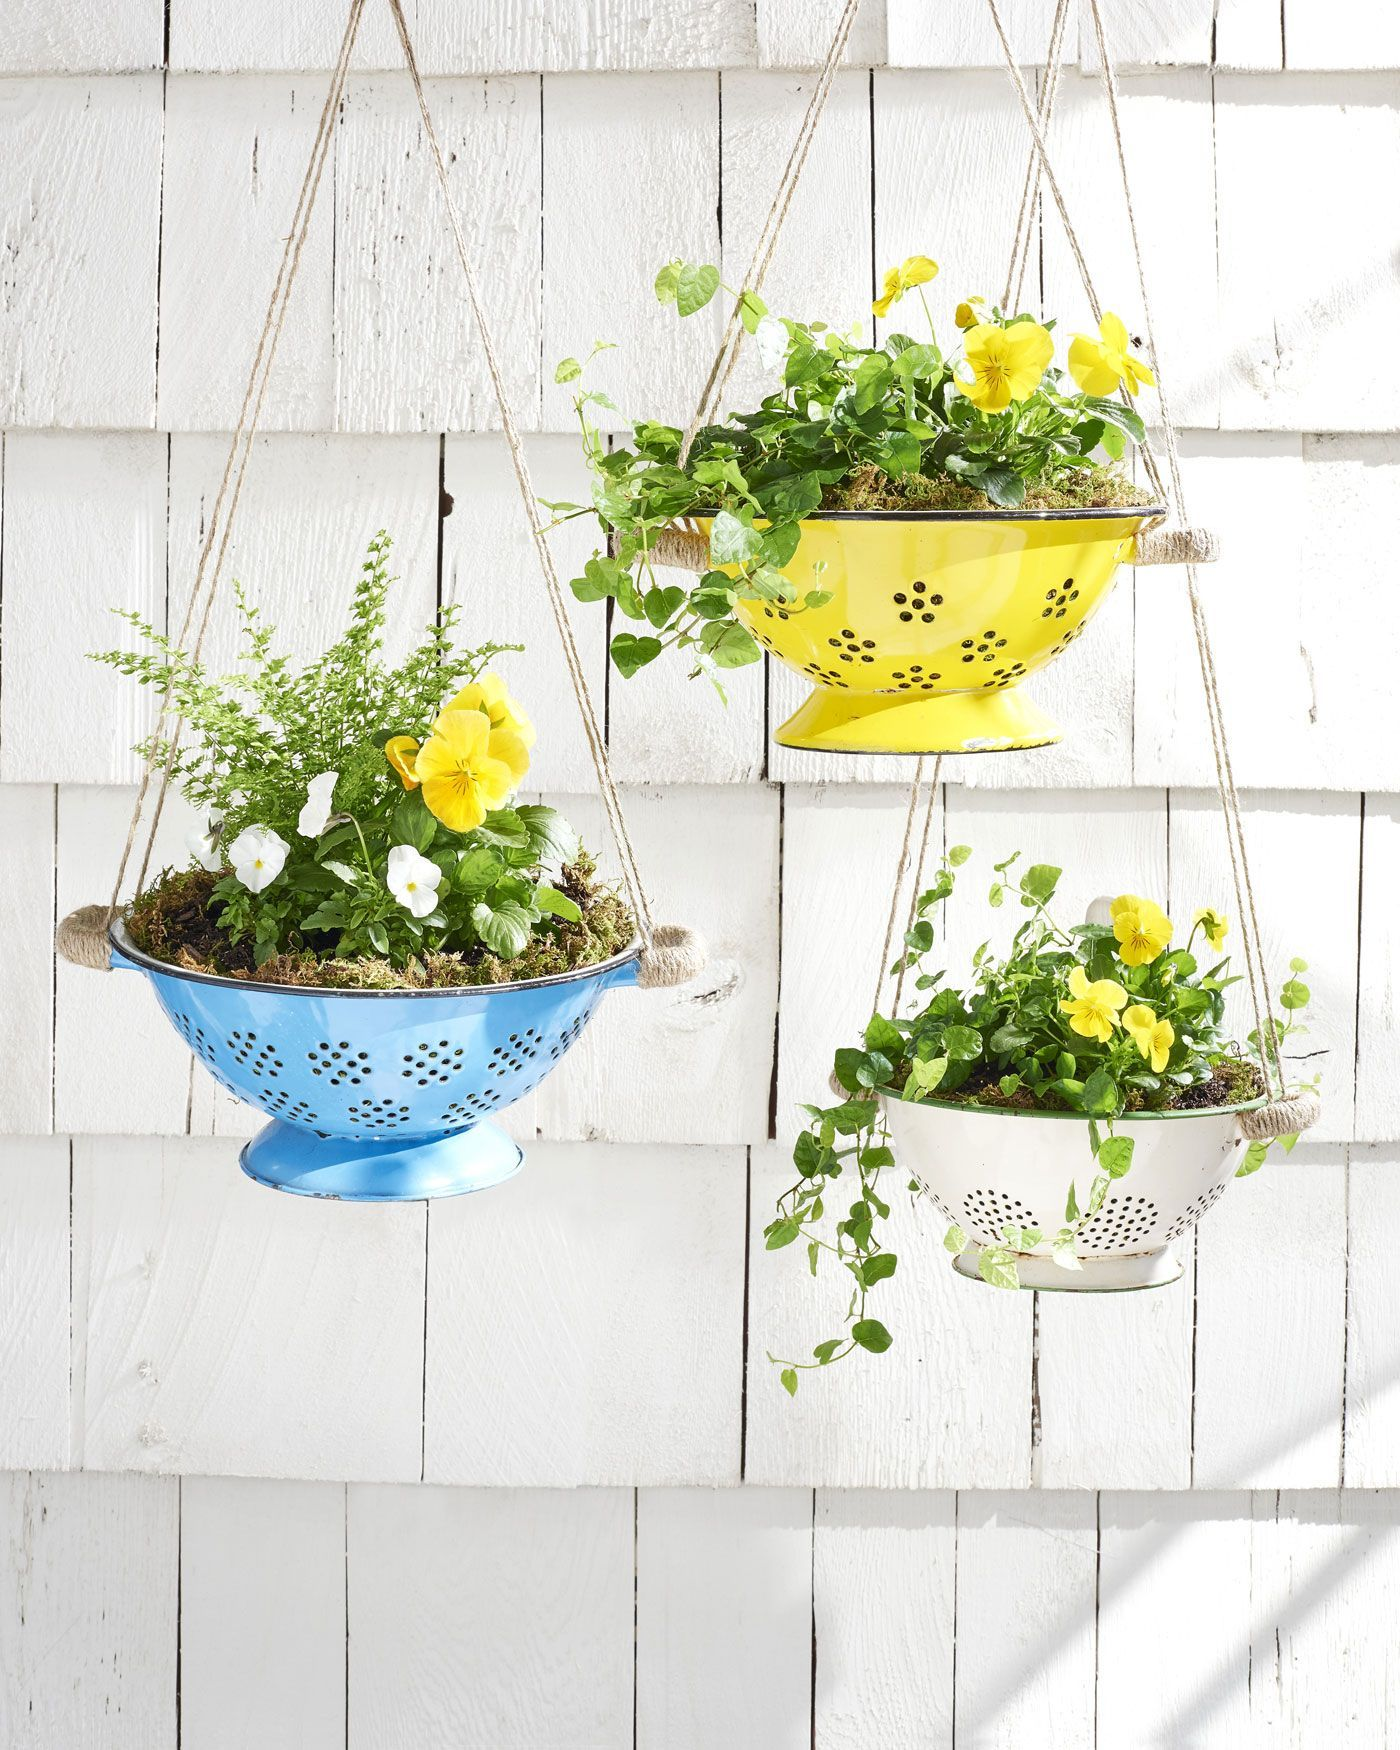 Creative DIY Spring Crafts Will Instantly Brighten Your Home How cute is this?! Here's how to convert a colander into a cheerful planter.How cute is this?! Here's how to convert a colander into a cheerful planter.